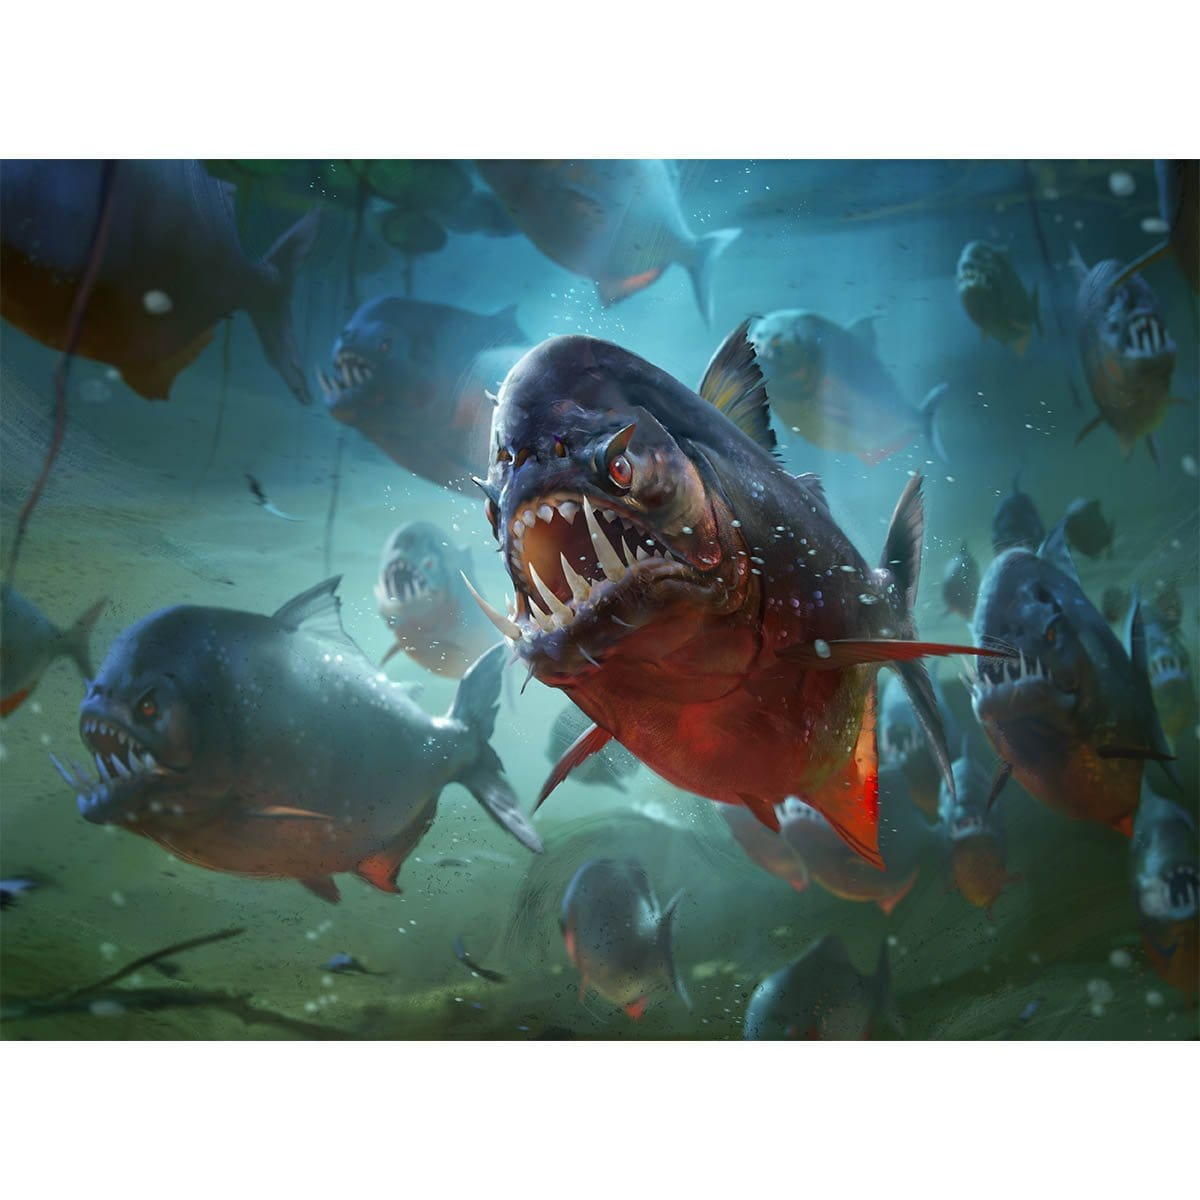 Moat Piranhas Print - Print - Original Magic Art - Accessories for Magic the Gathering and other card games